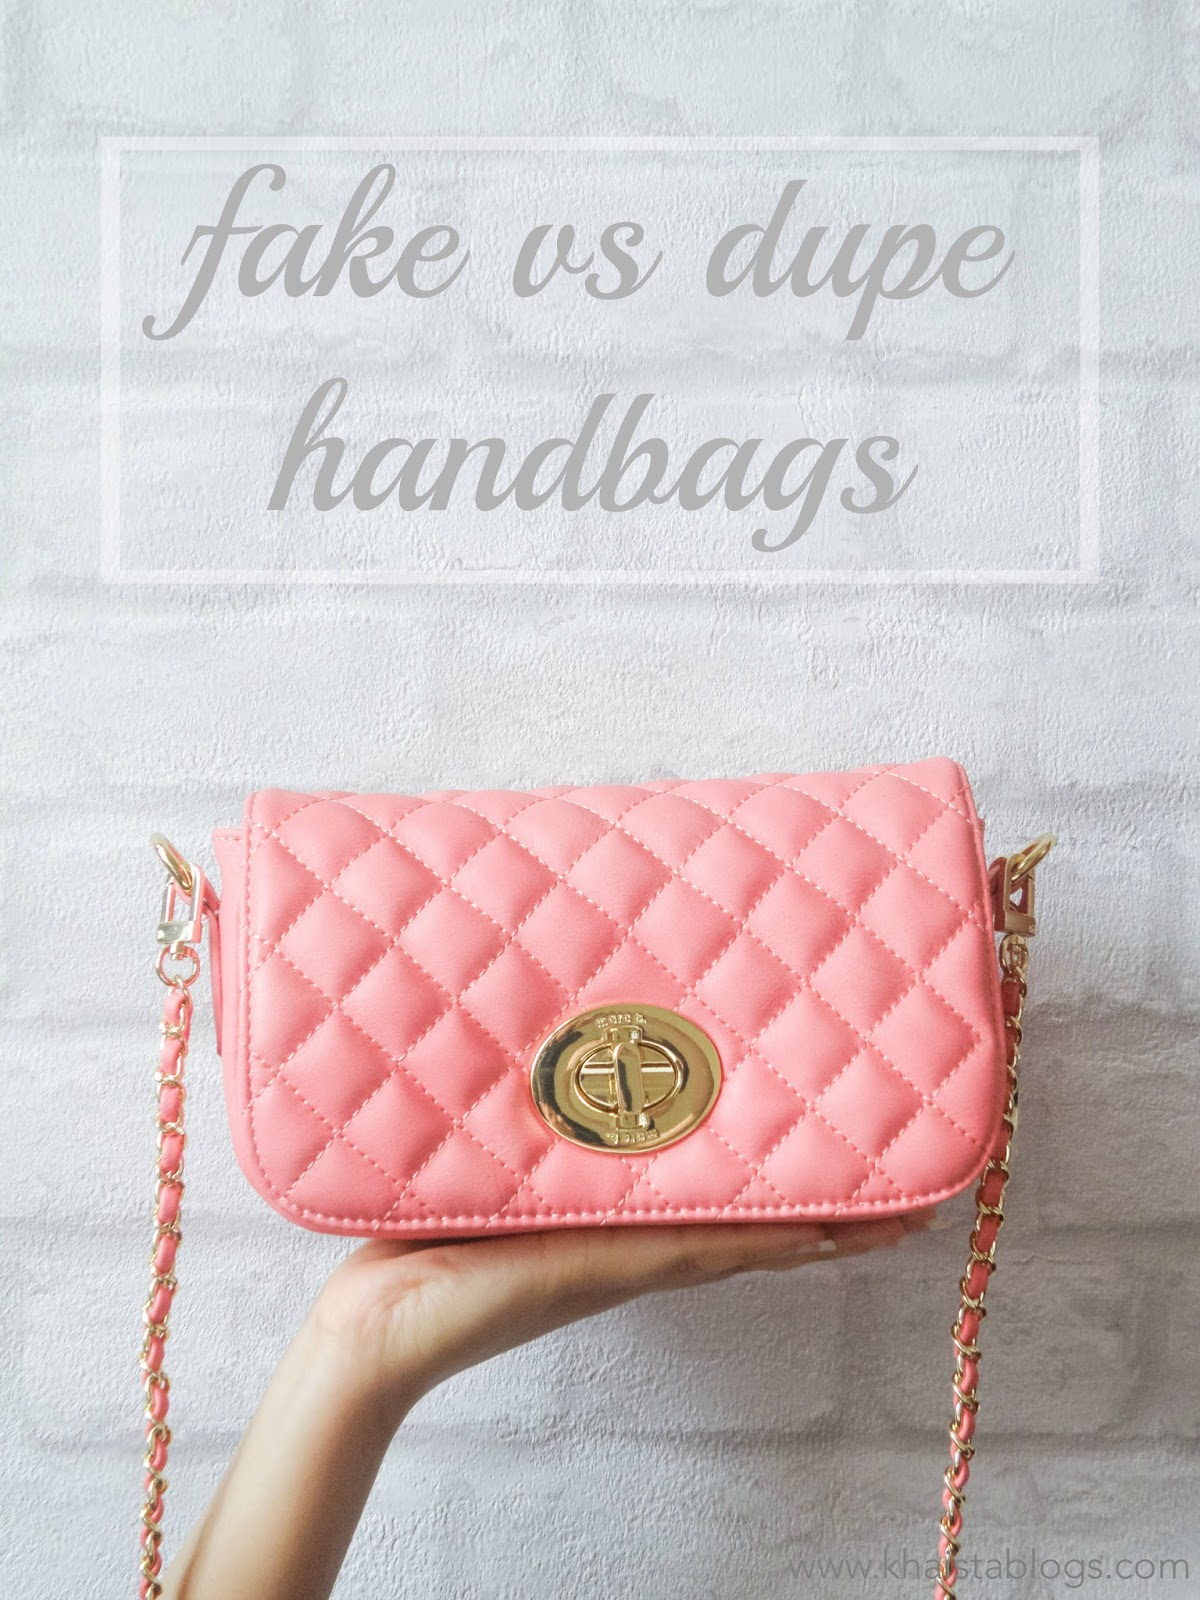 fake vs dupe handbags